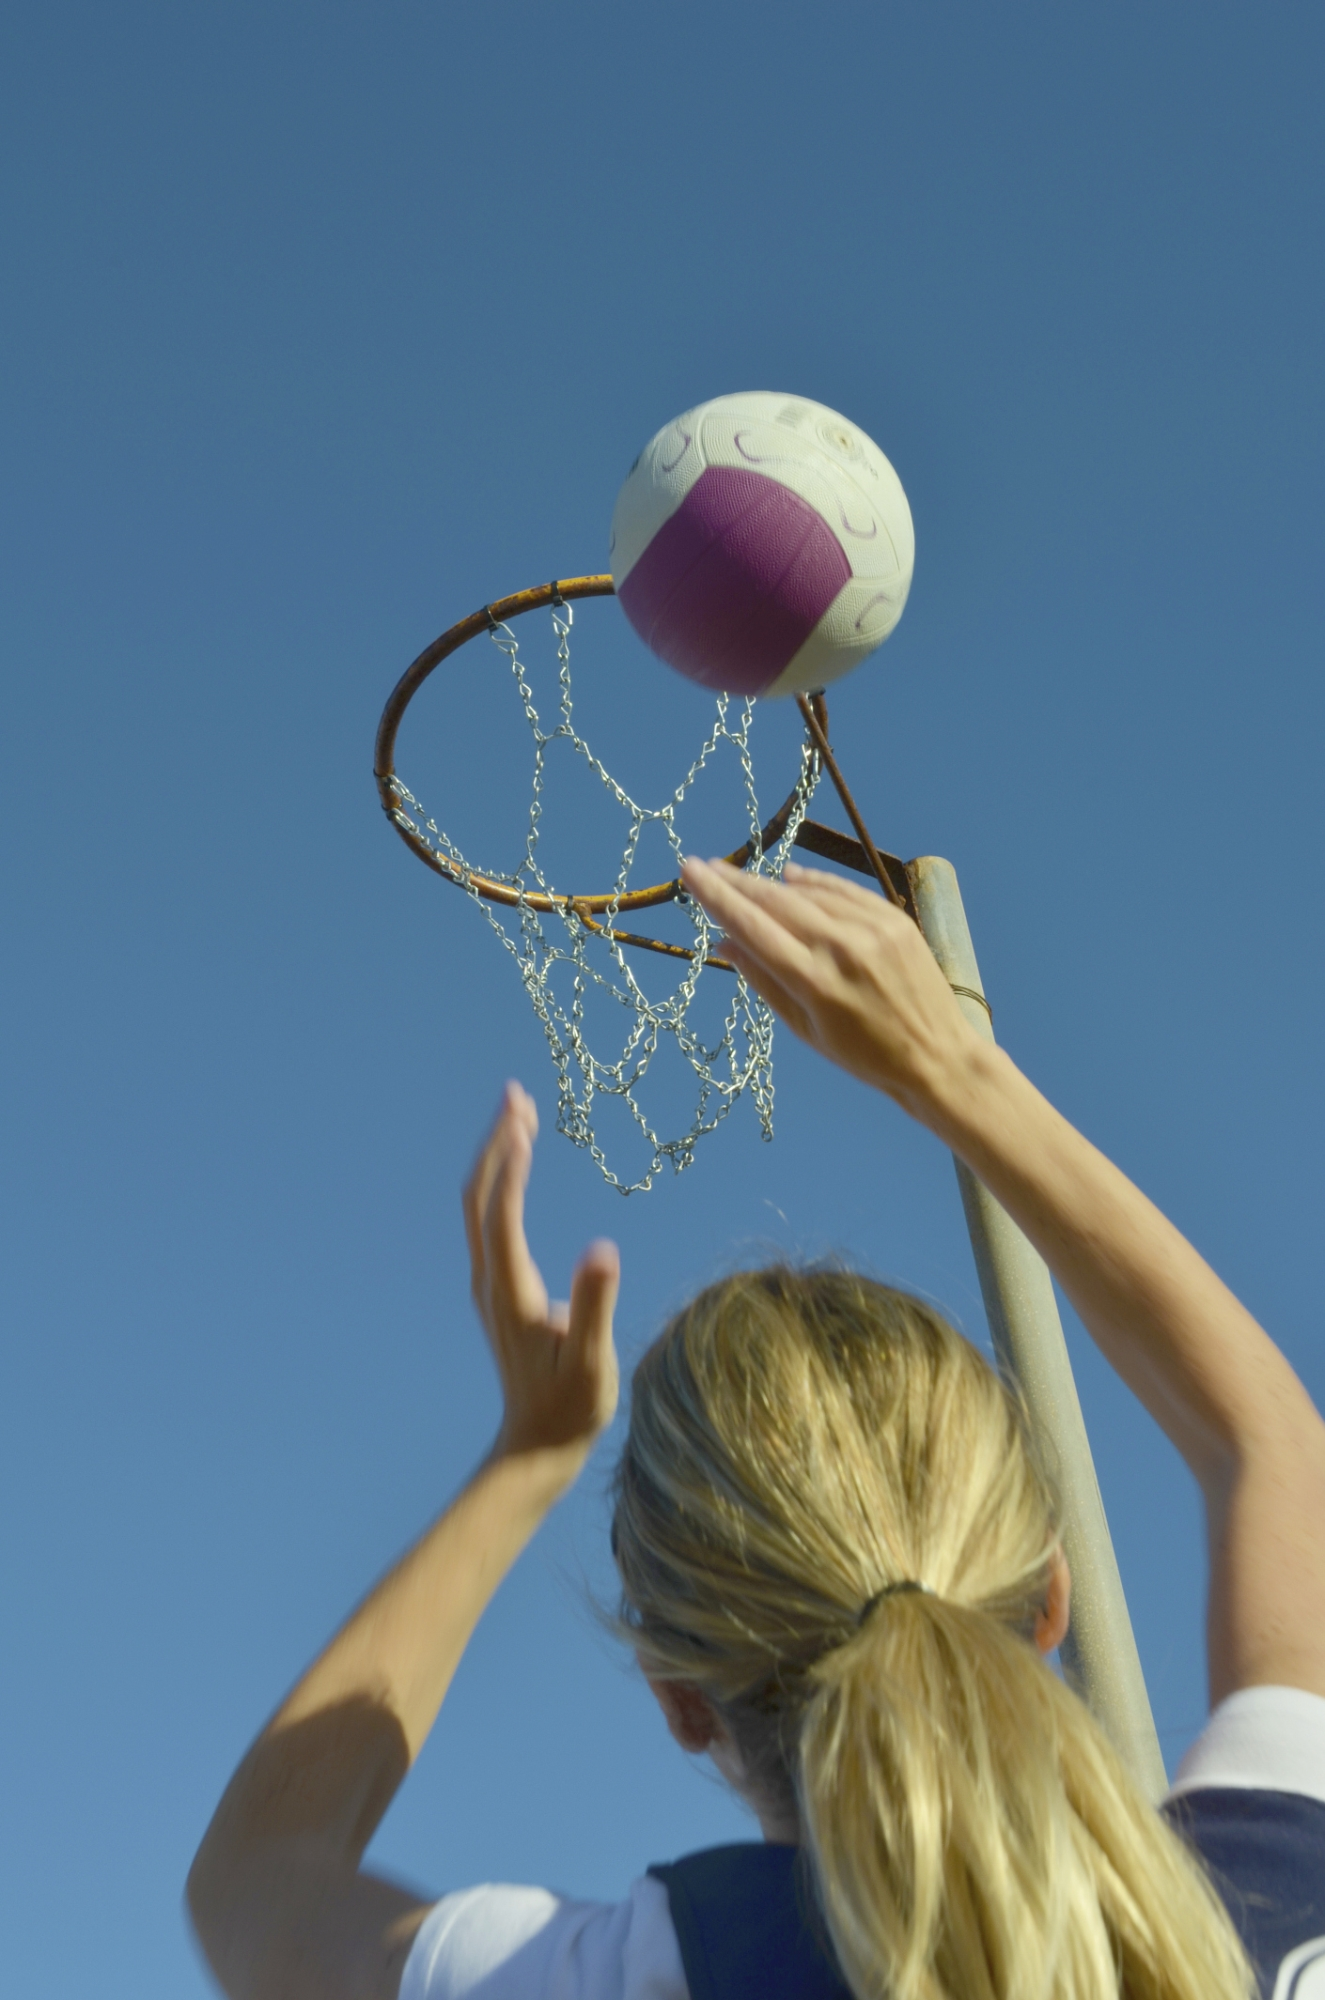 No Limits Netball begins in Landford